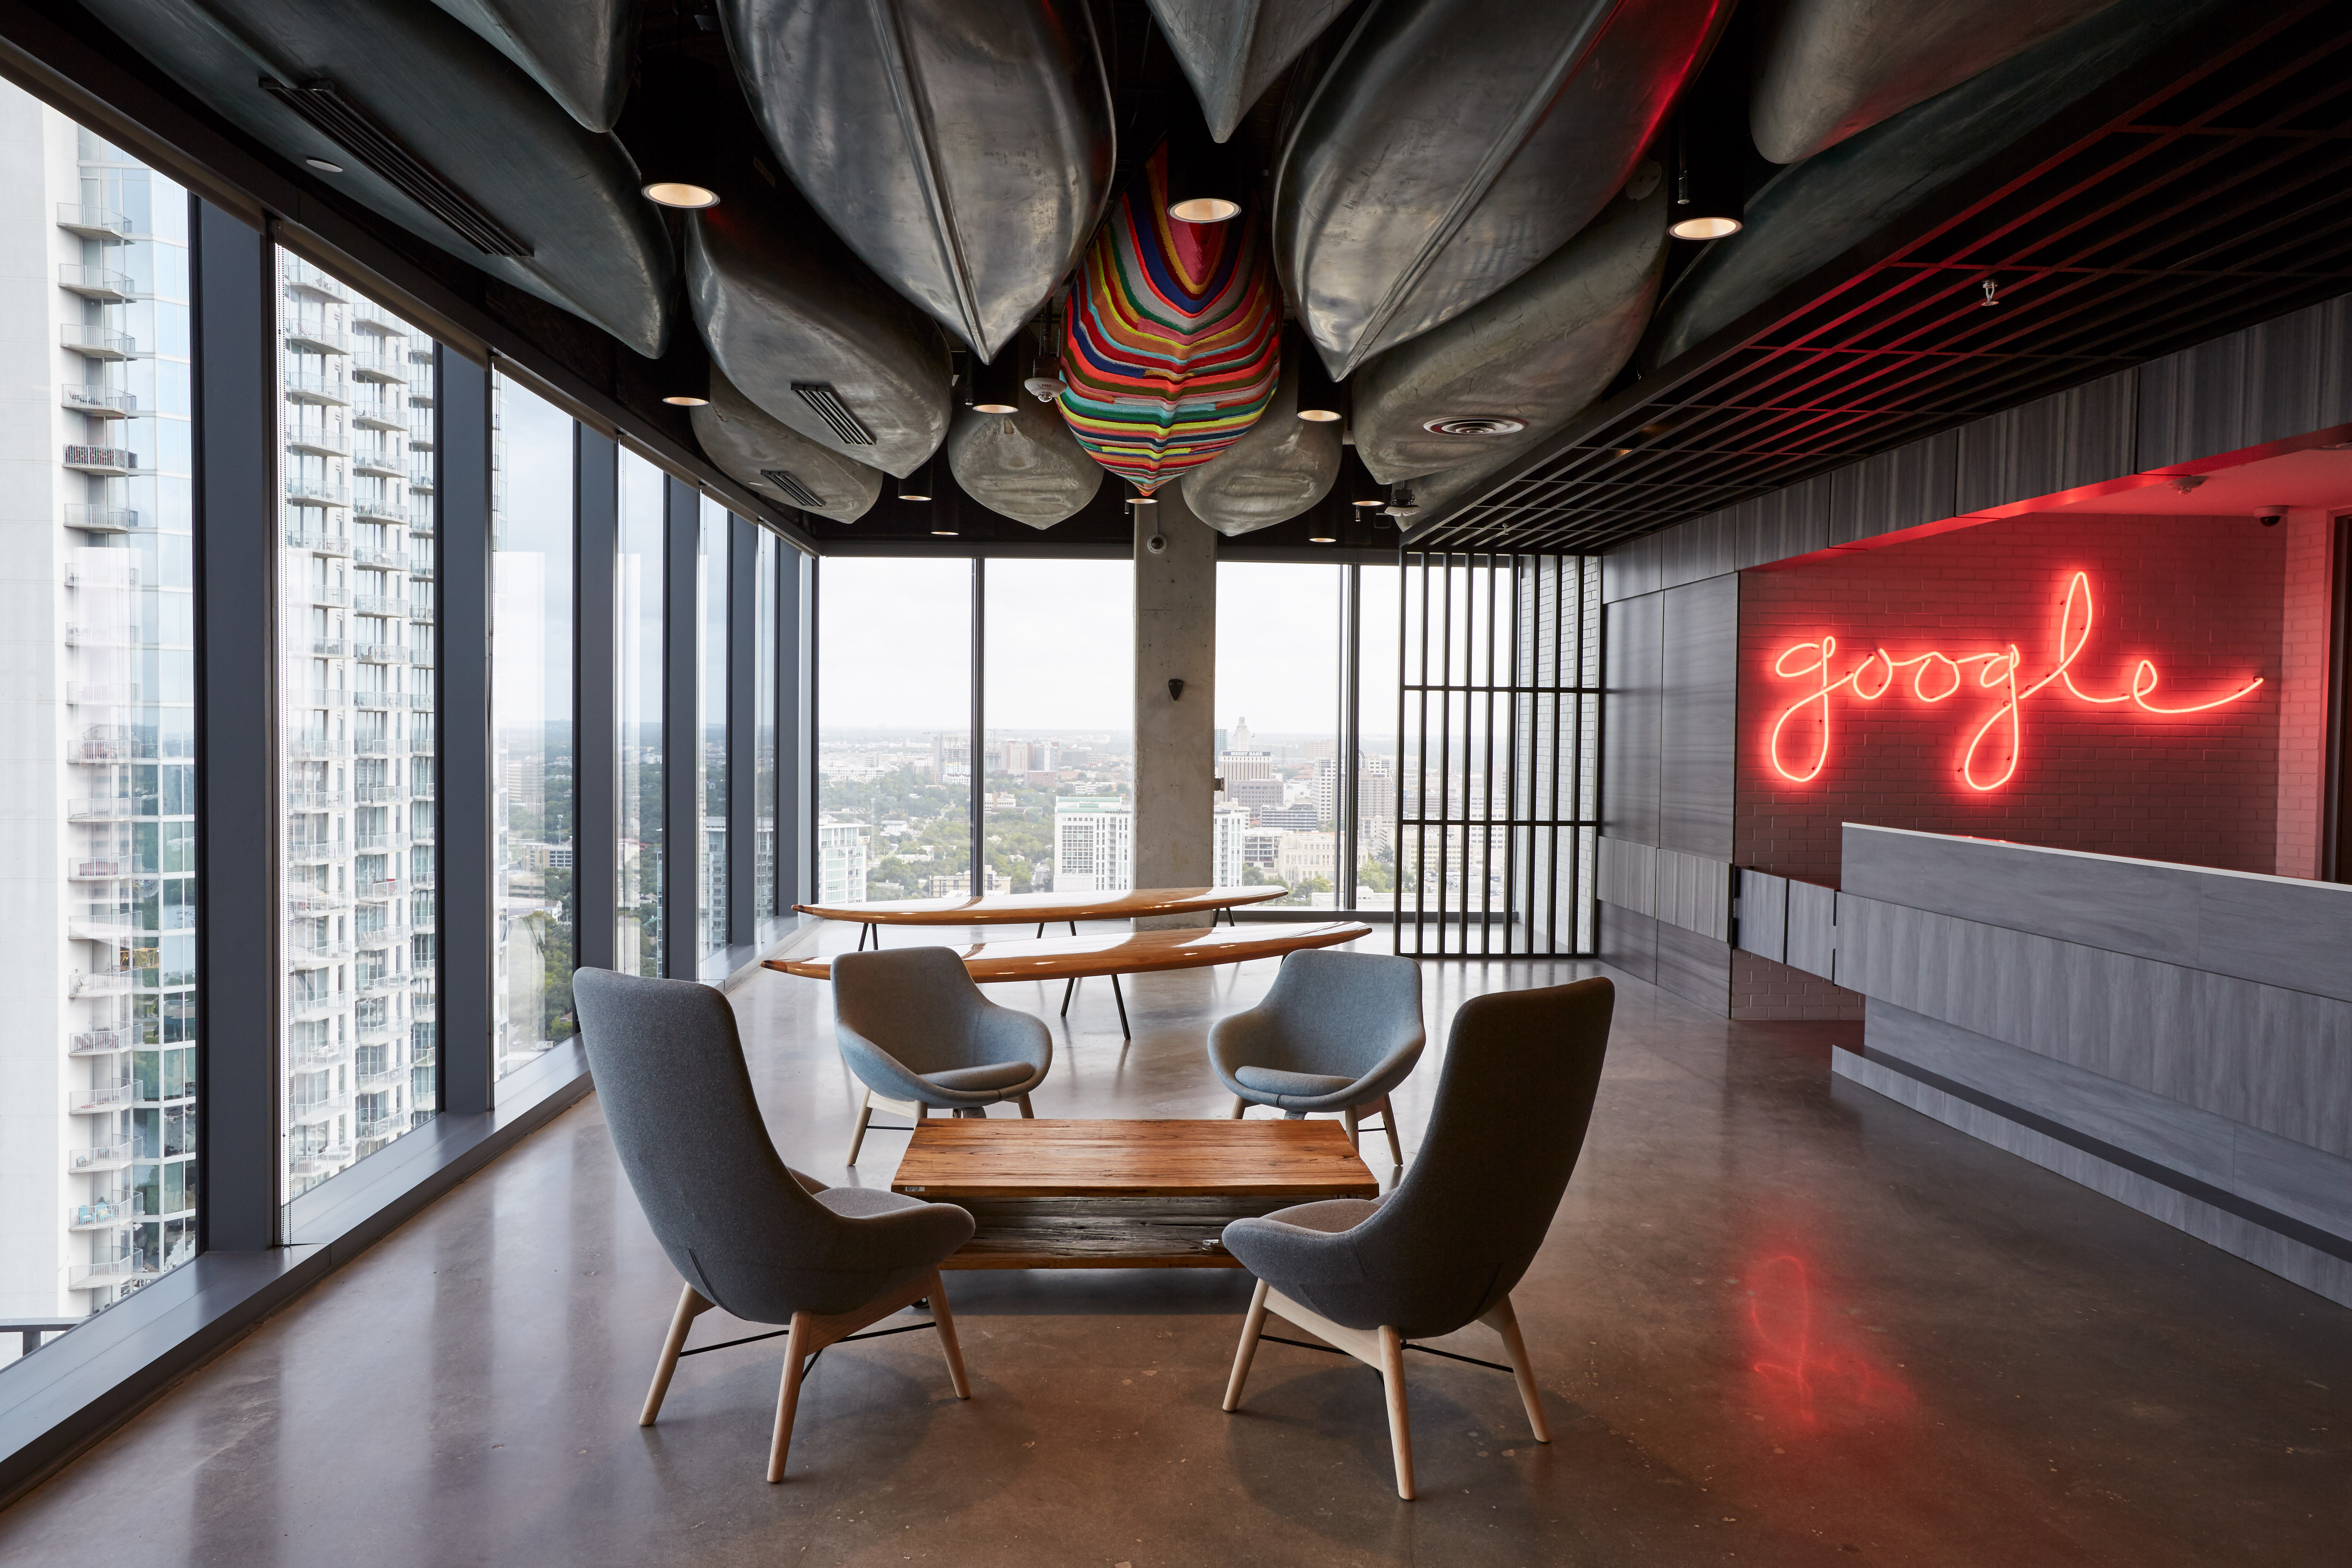 """room in high-rise with window walls and canoes on the ceiling and a neon sign that says """"google"""" in script"""